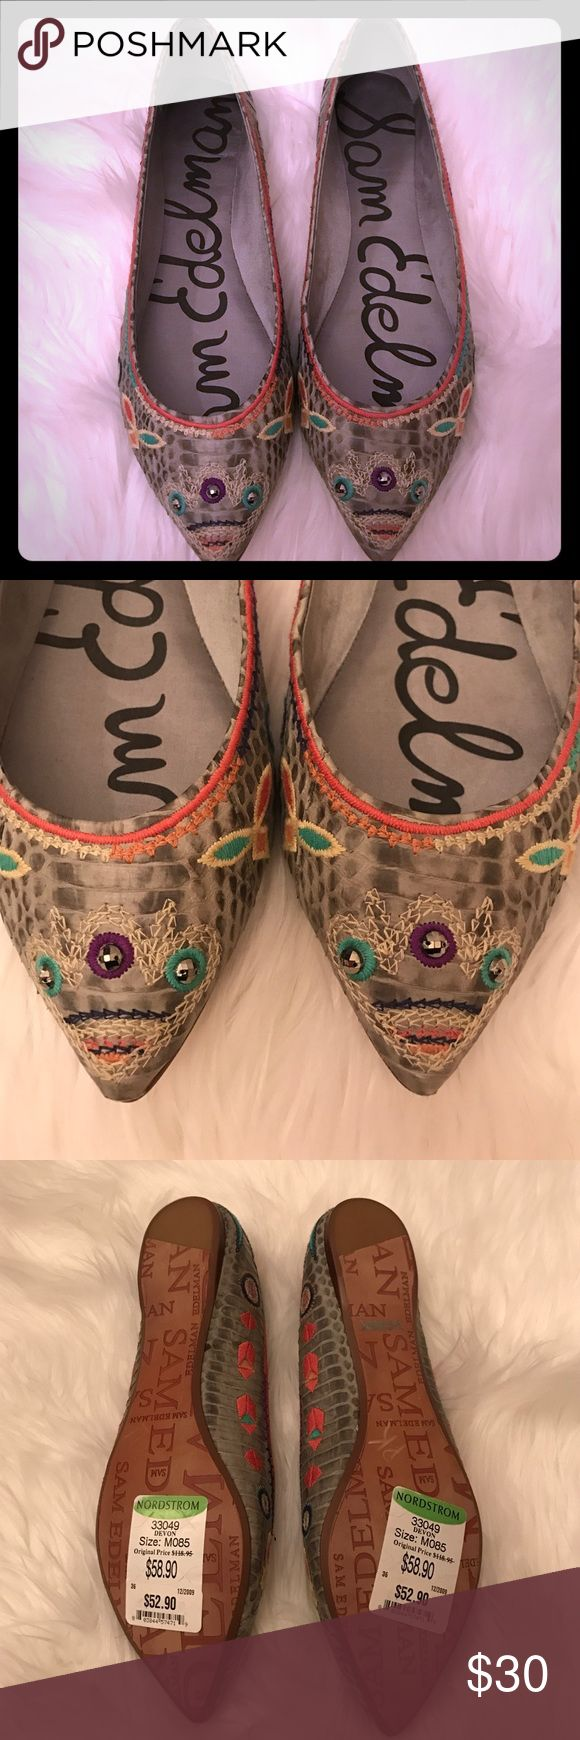 NWT Sam Edelman Aztec flats NWT flats. Grey snakeskin base with Aztec detailed embroidery 3 jewels on toe and two in back. Sam Edelman Shoes Flats & Loafers